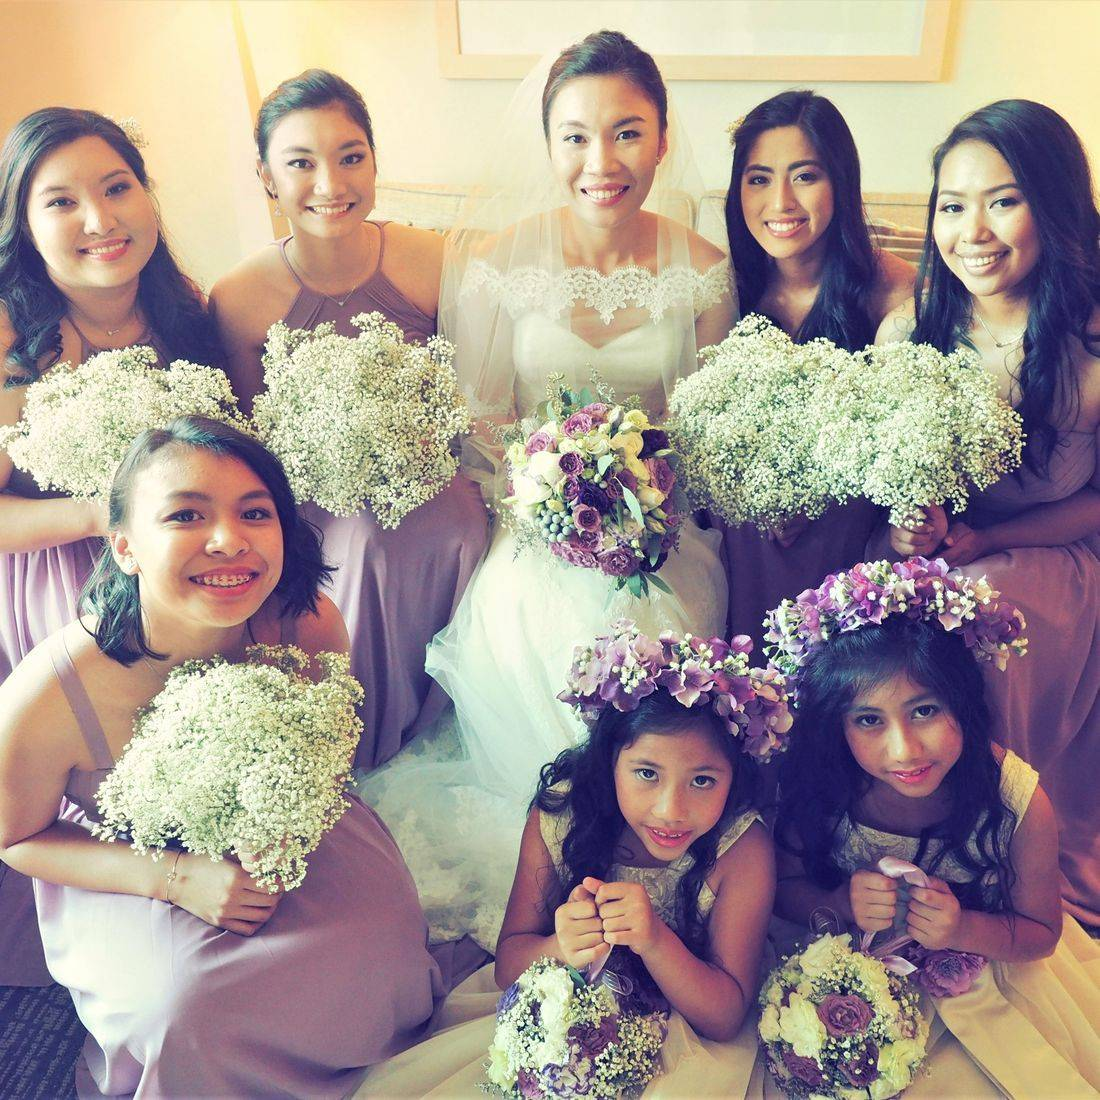 bride, bridesmaids, makeup, wedding, bridal